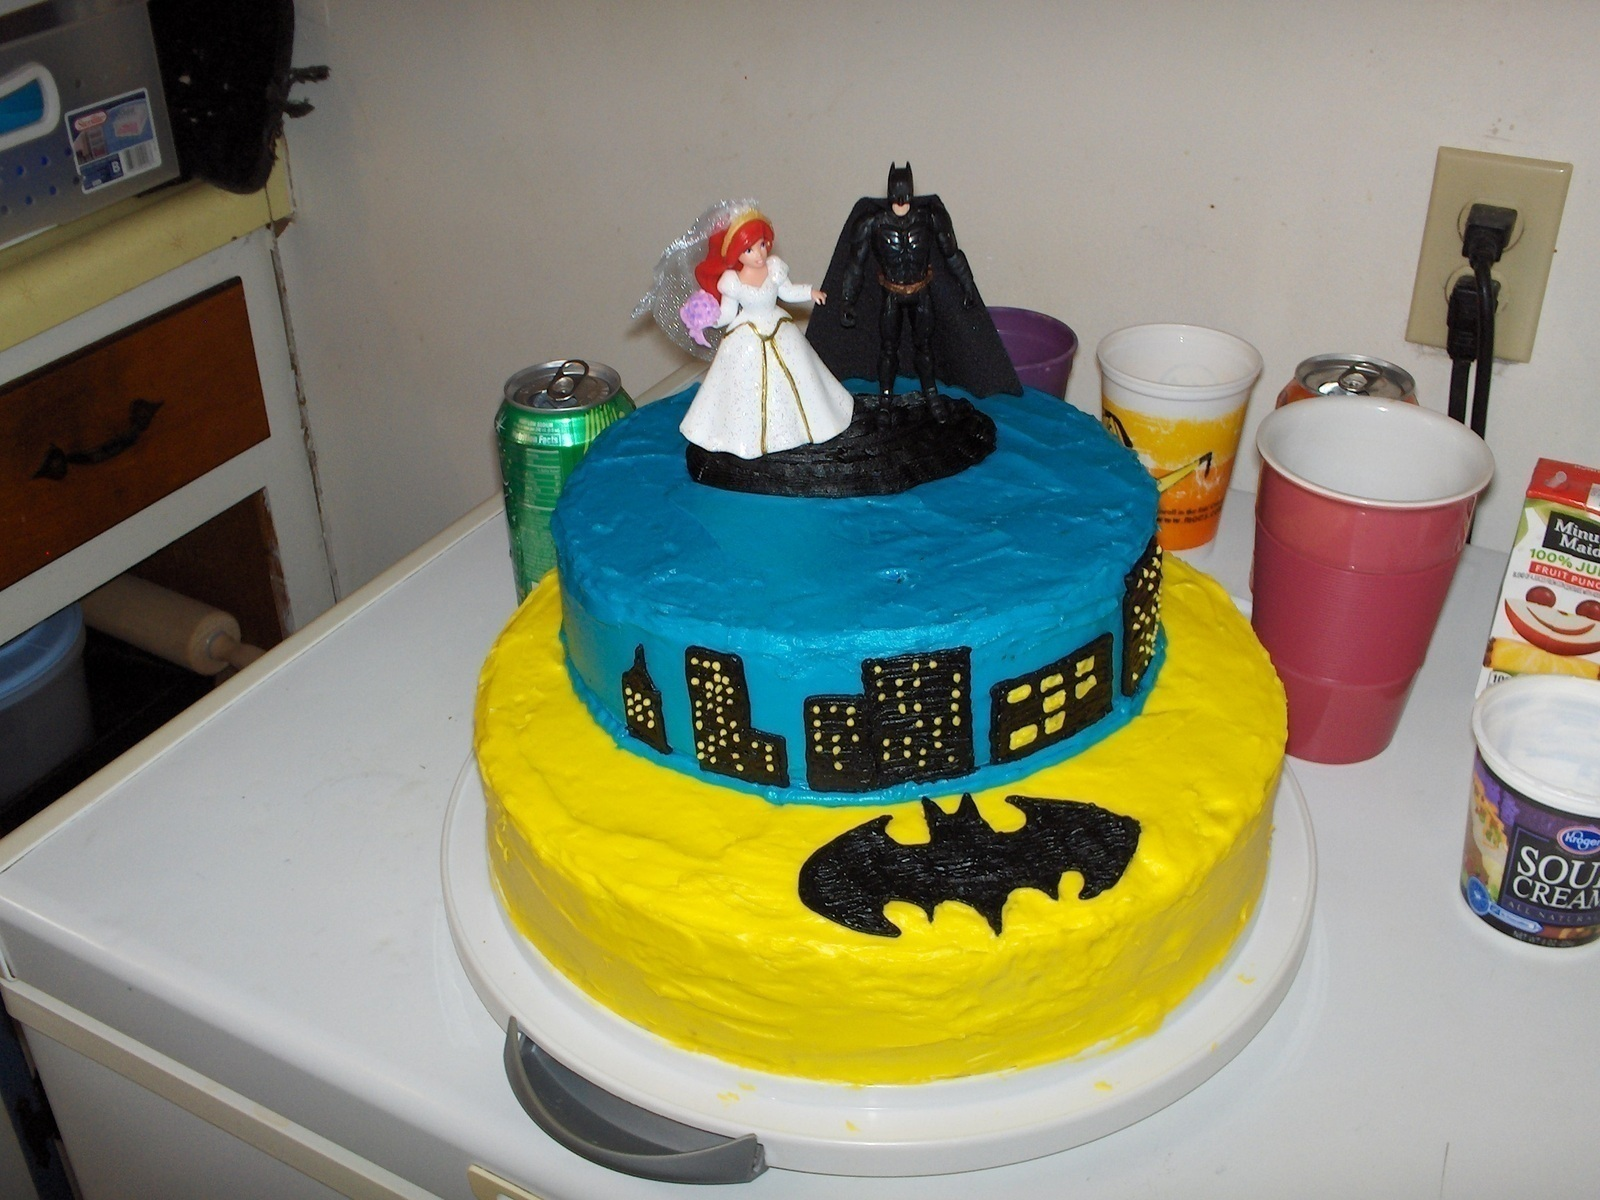 Batman Cake 183 A Superhero Cake 183 Cooking Baking And Food